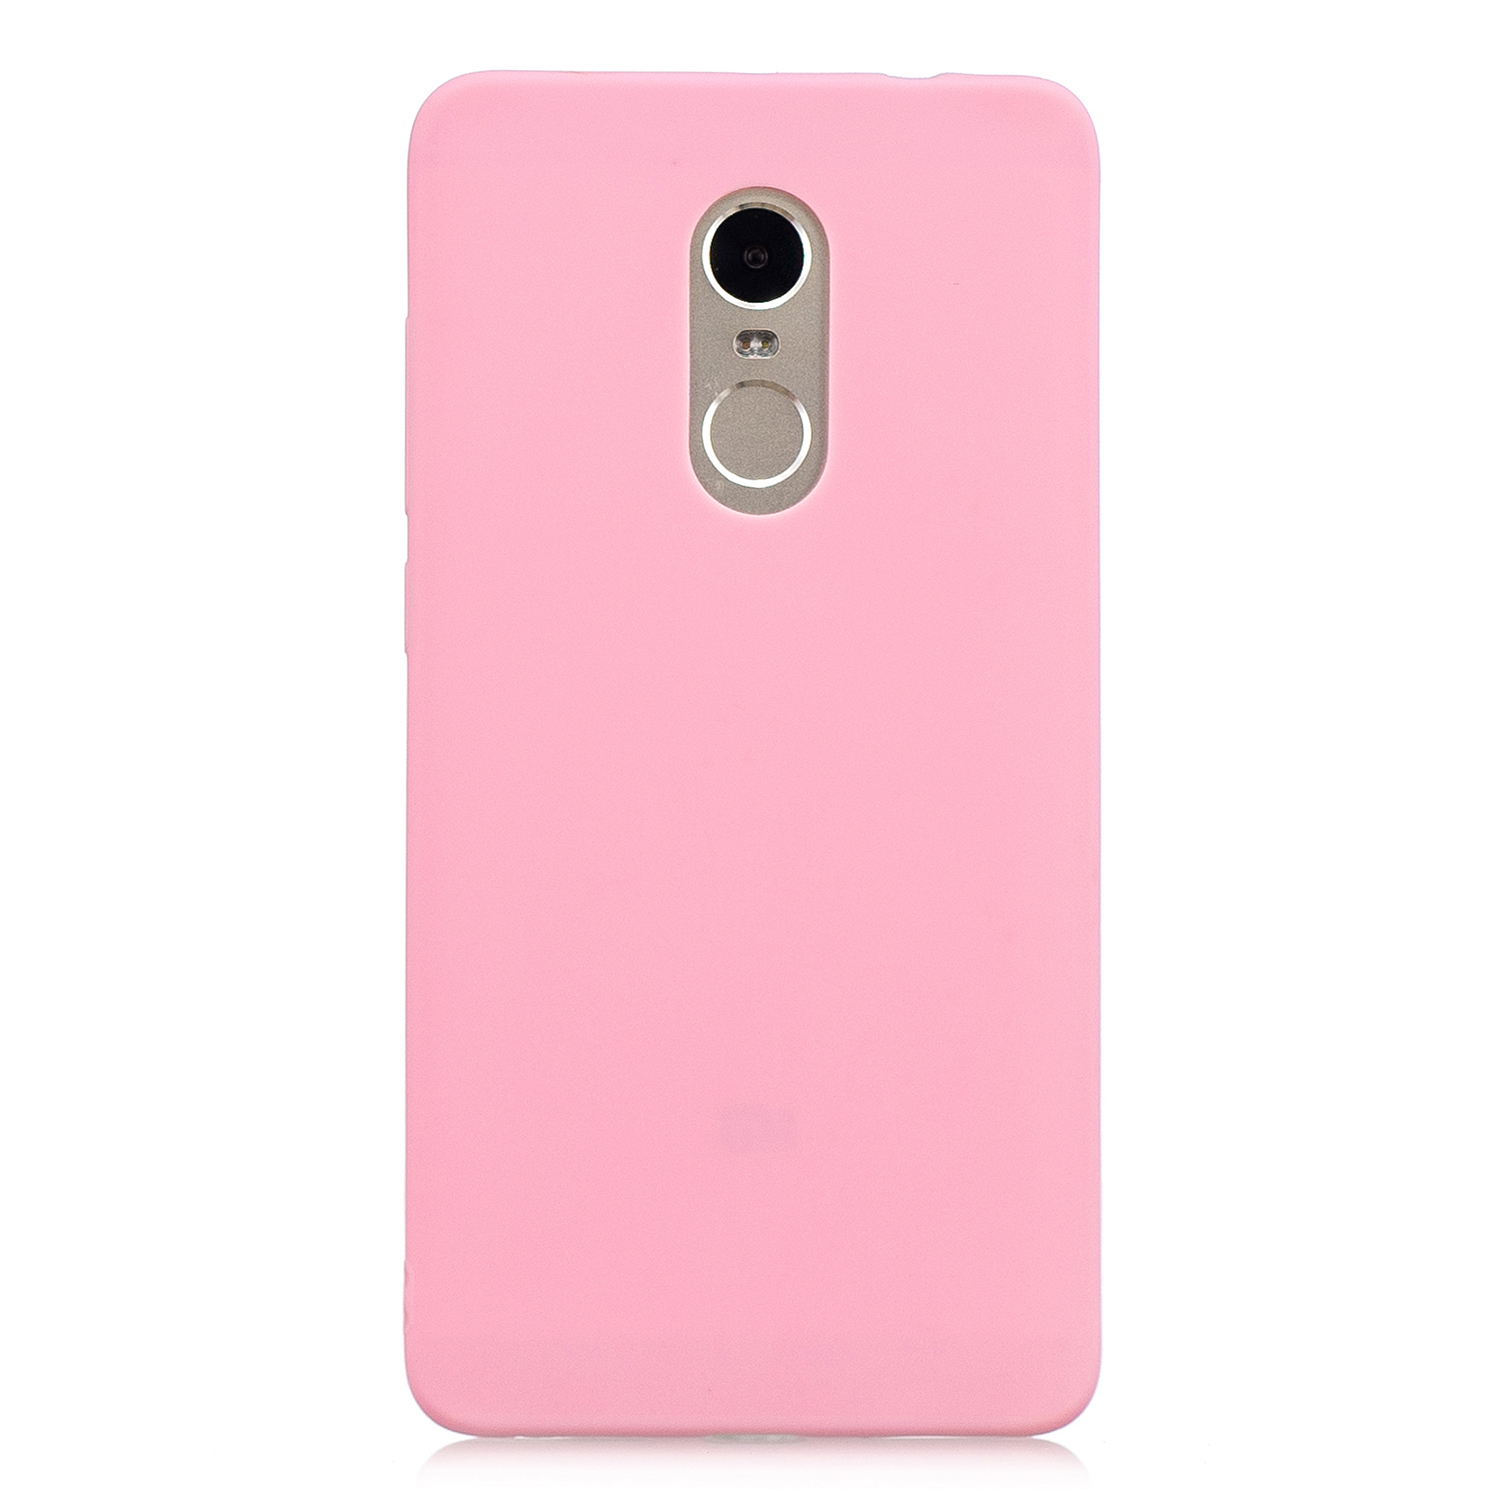 for XIAOMI Redmi NOTE 4X/NOTE 4 Lovely Candy Color Matte TPU Anti-scratch Non-slip Protective Cover Back Case dark pink